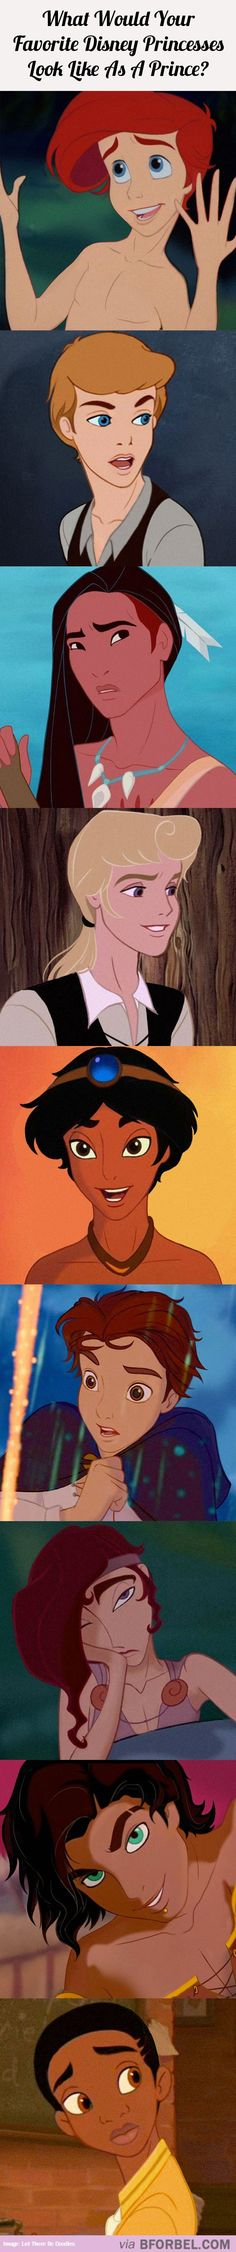 9 Disney Princesses If They Were Actually Princes…